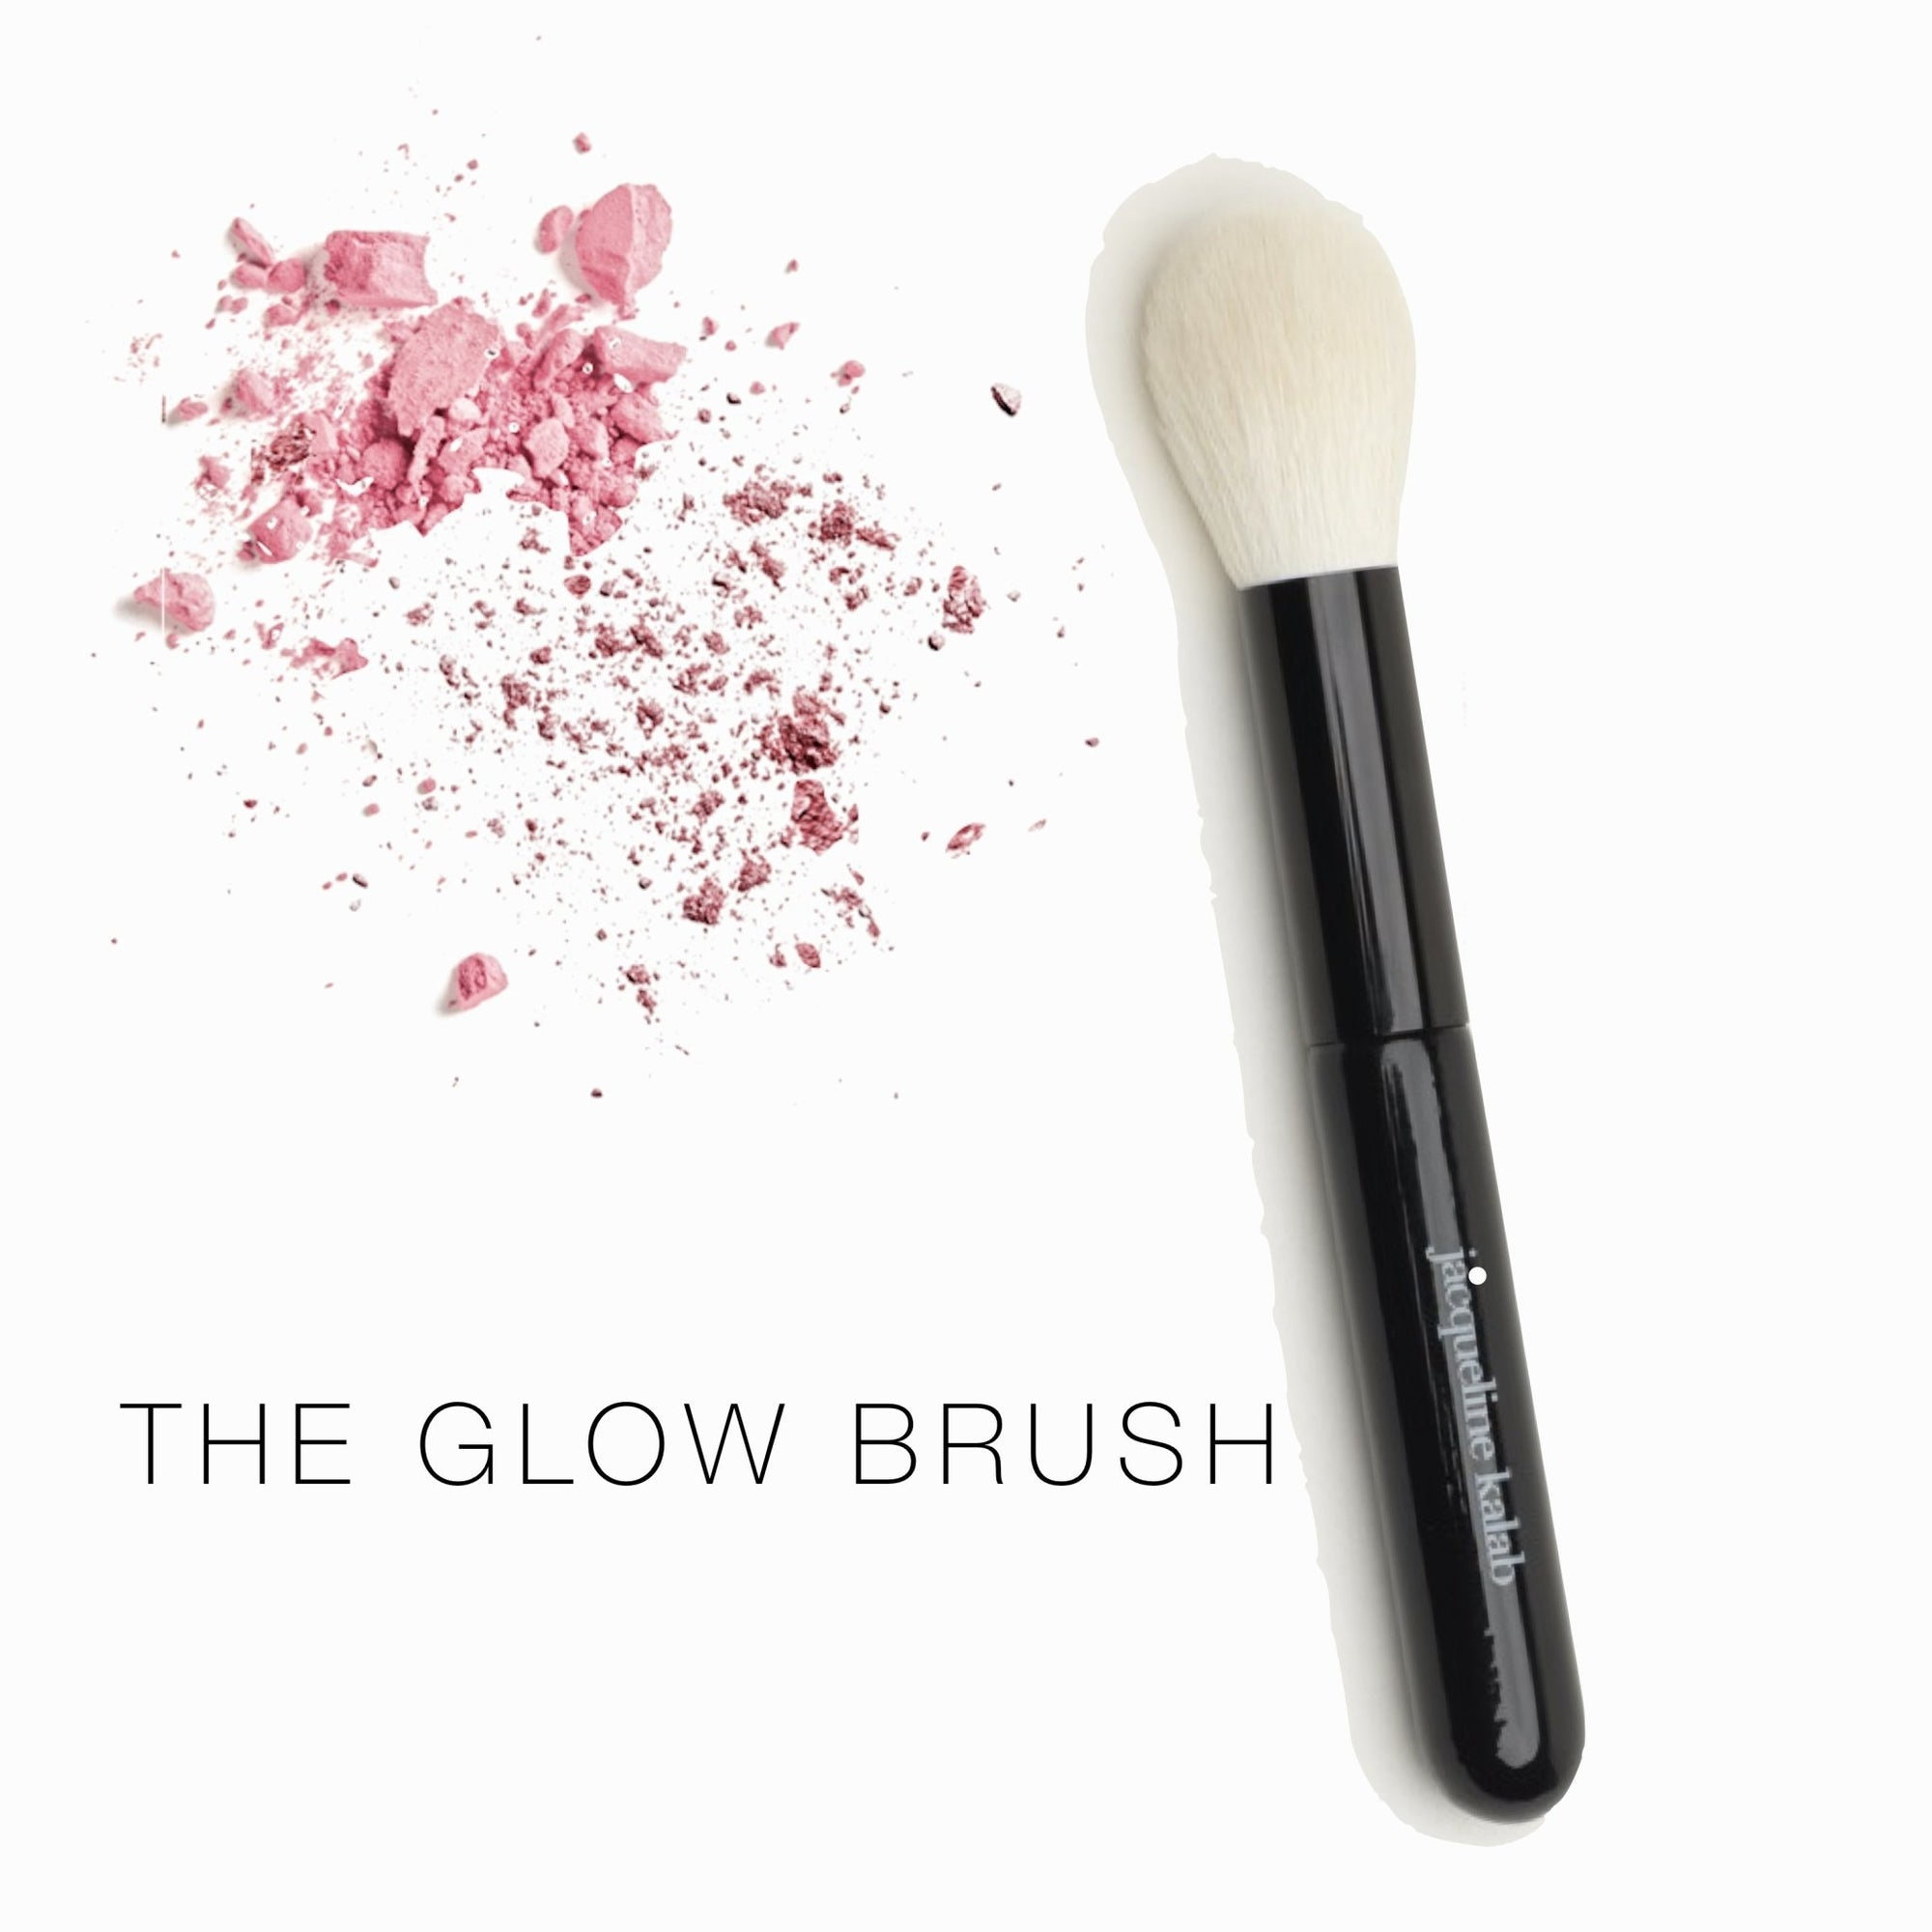 The Glow Brush - For Bronzer, Blush, and all Powders - Jacqueline Kalab Beauty